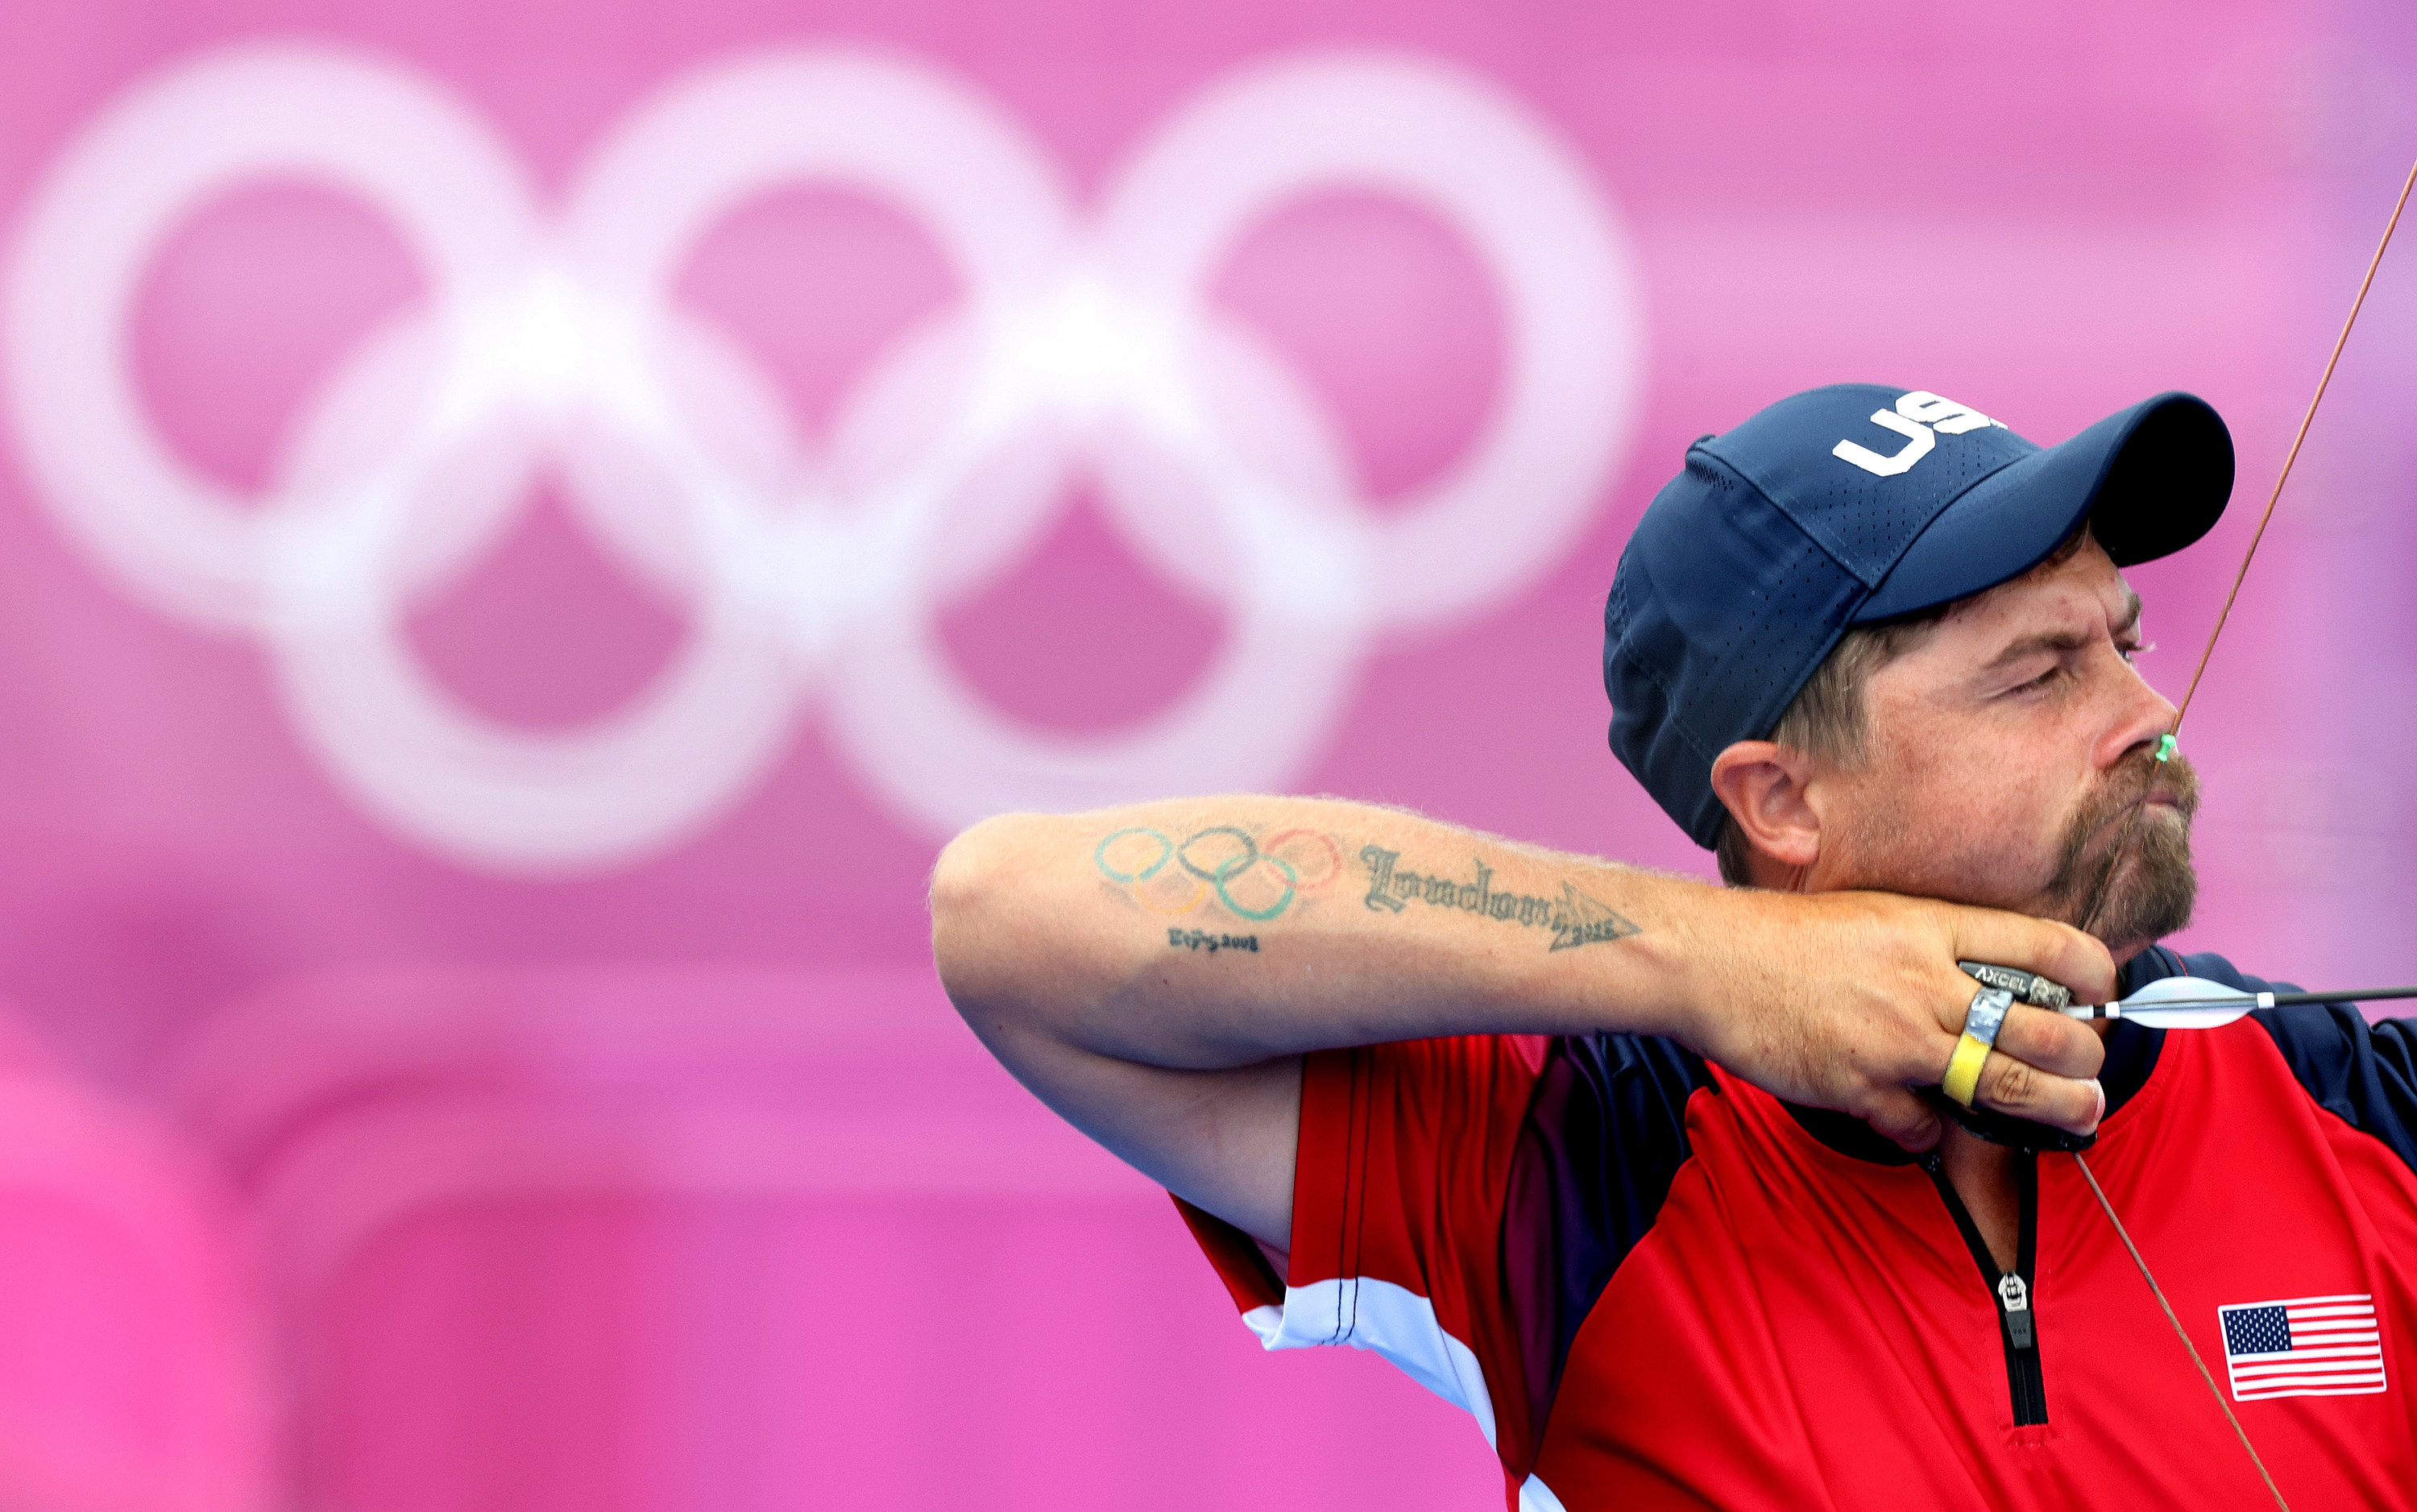 Close-up look at athlete holding bow and arrow